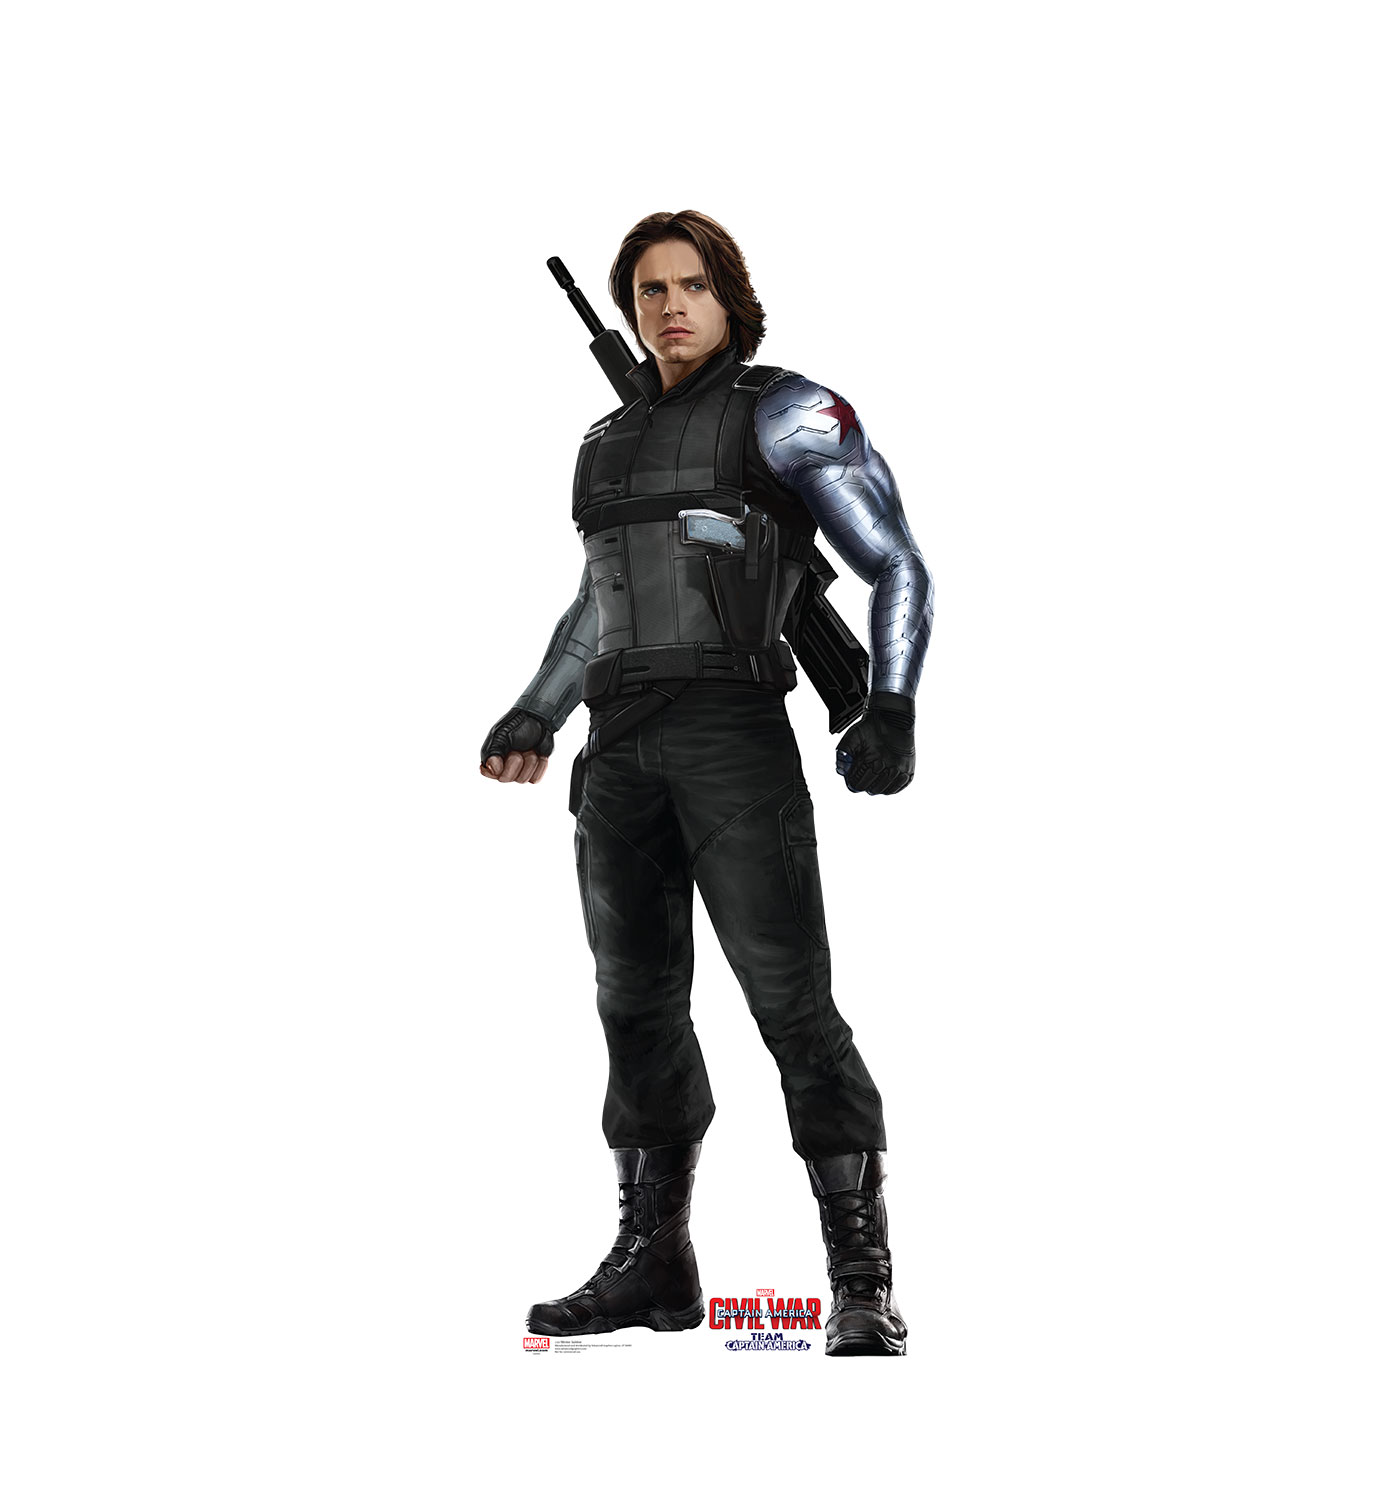 captain-america-civil-war-artwork-winter-soldier-1